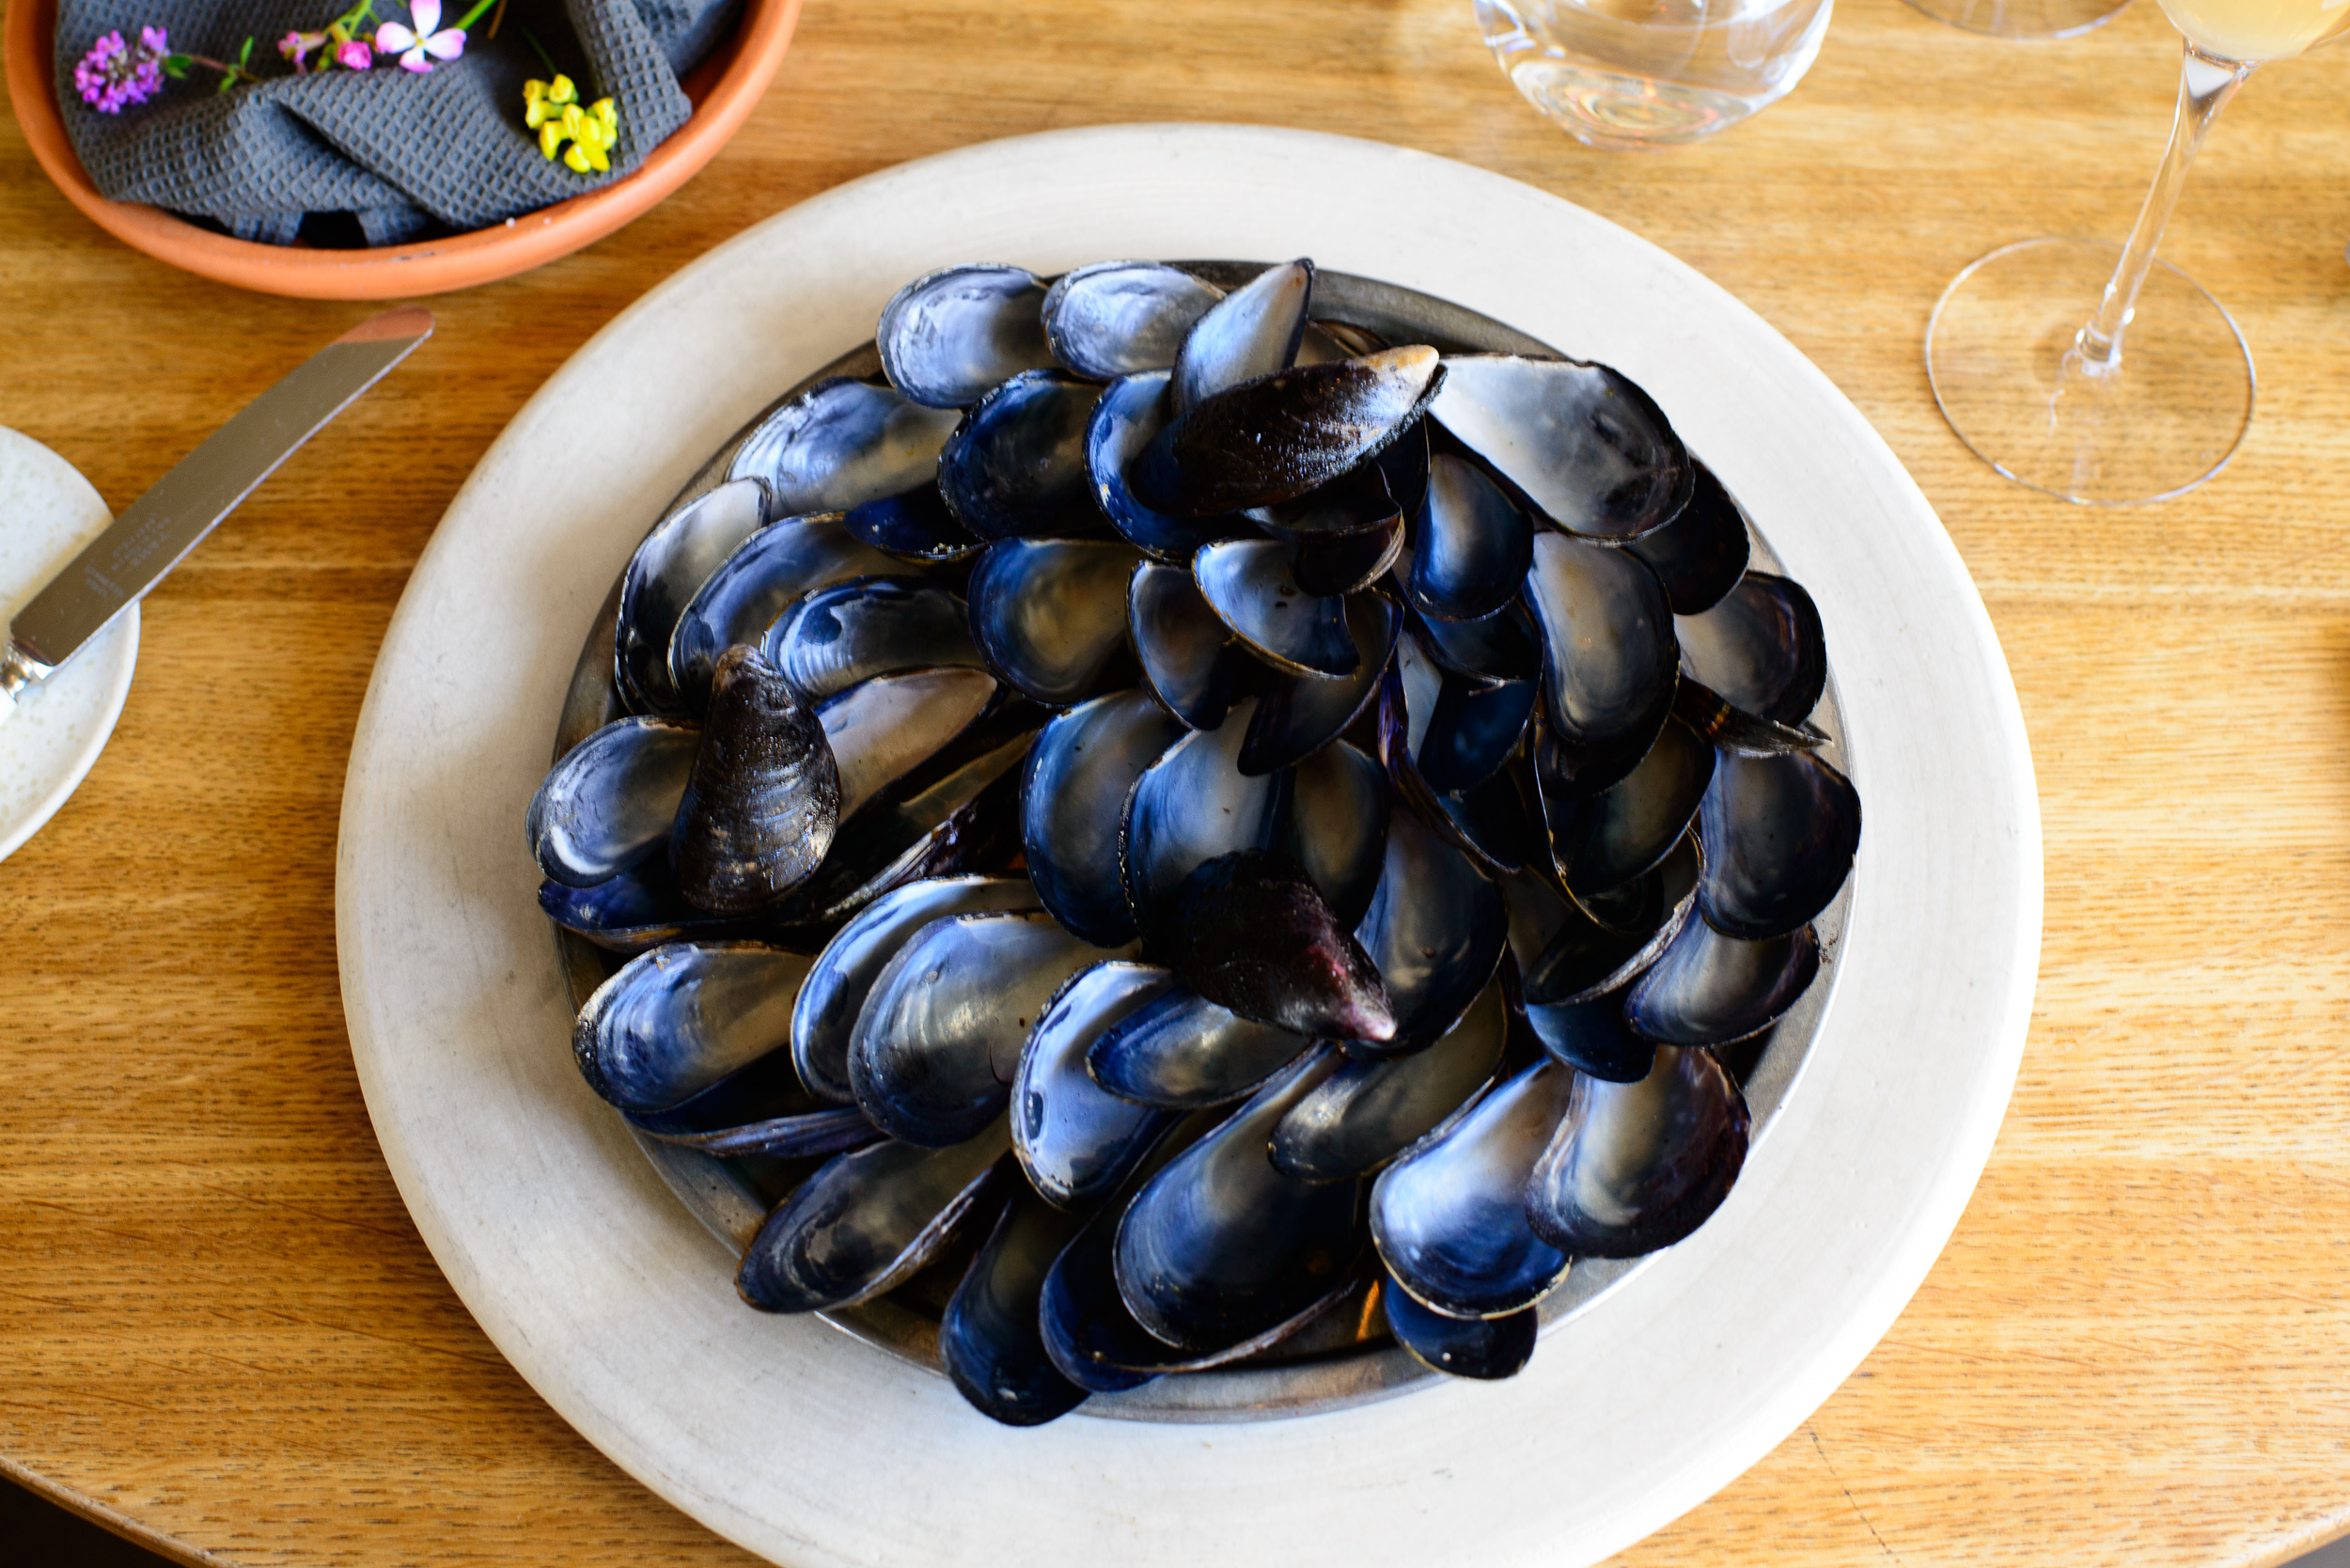 5th Course: Blue mussel and celery